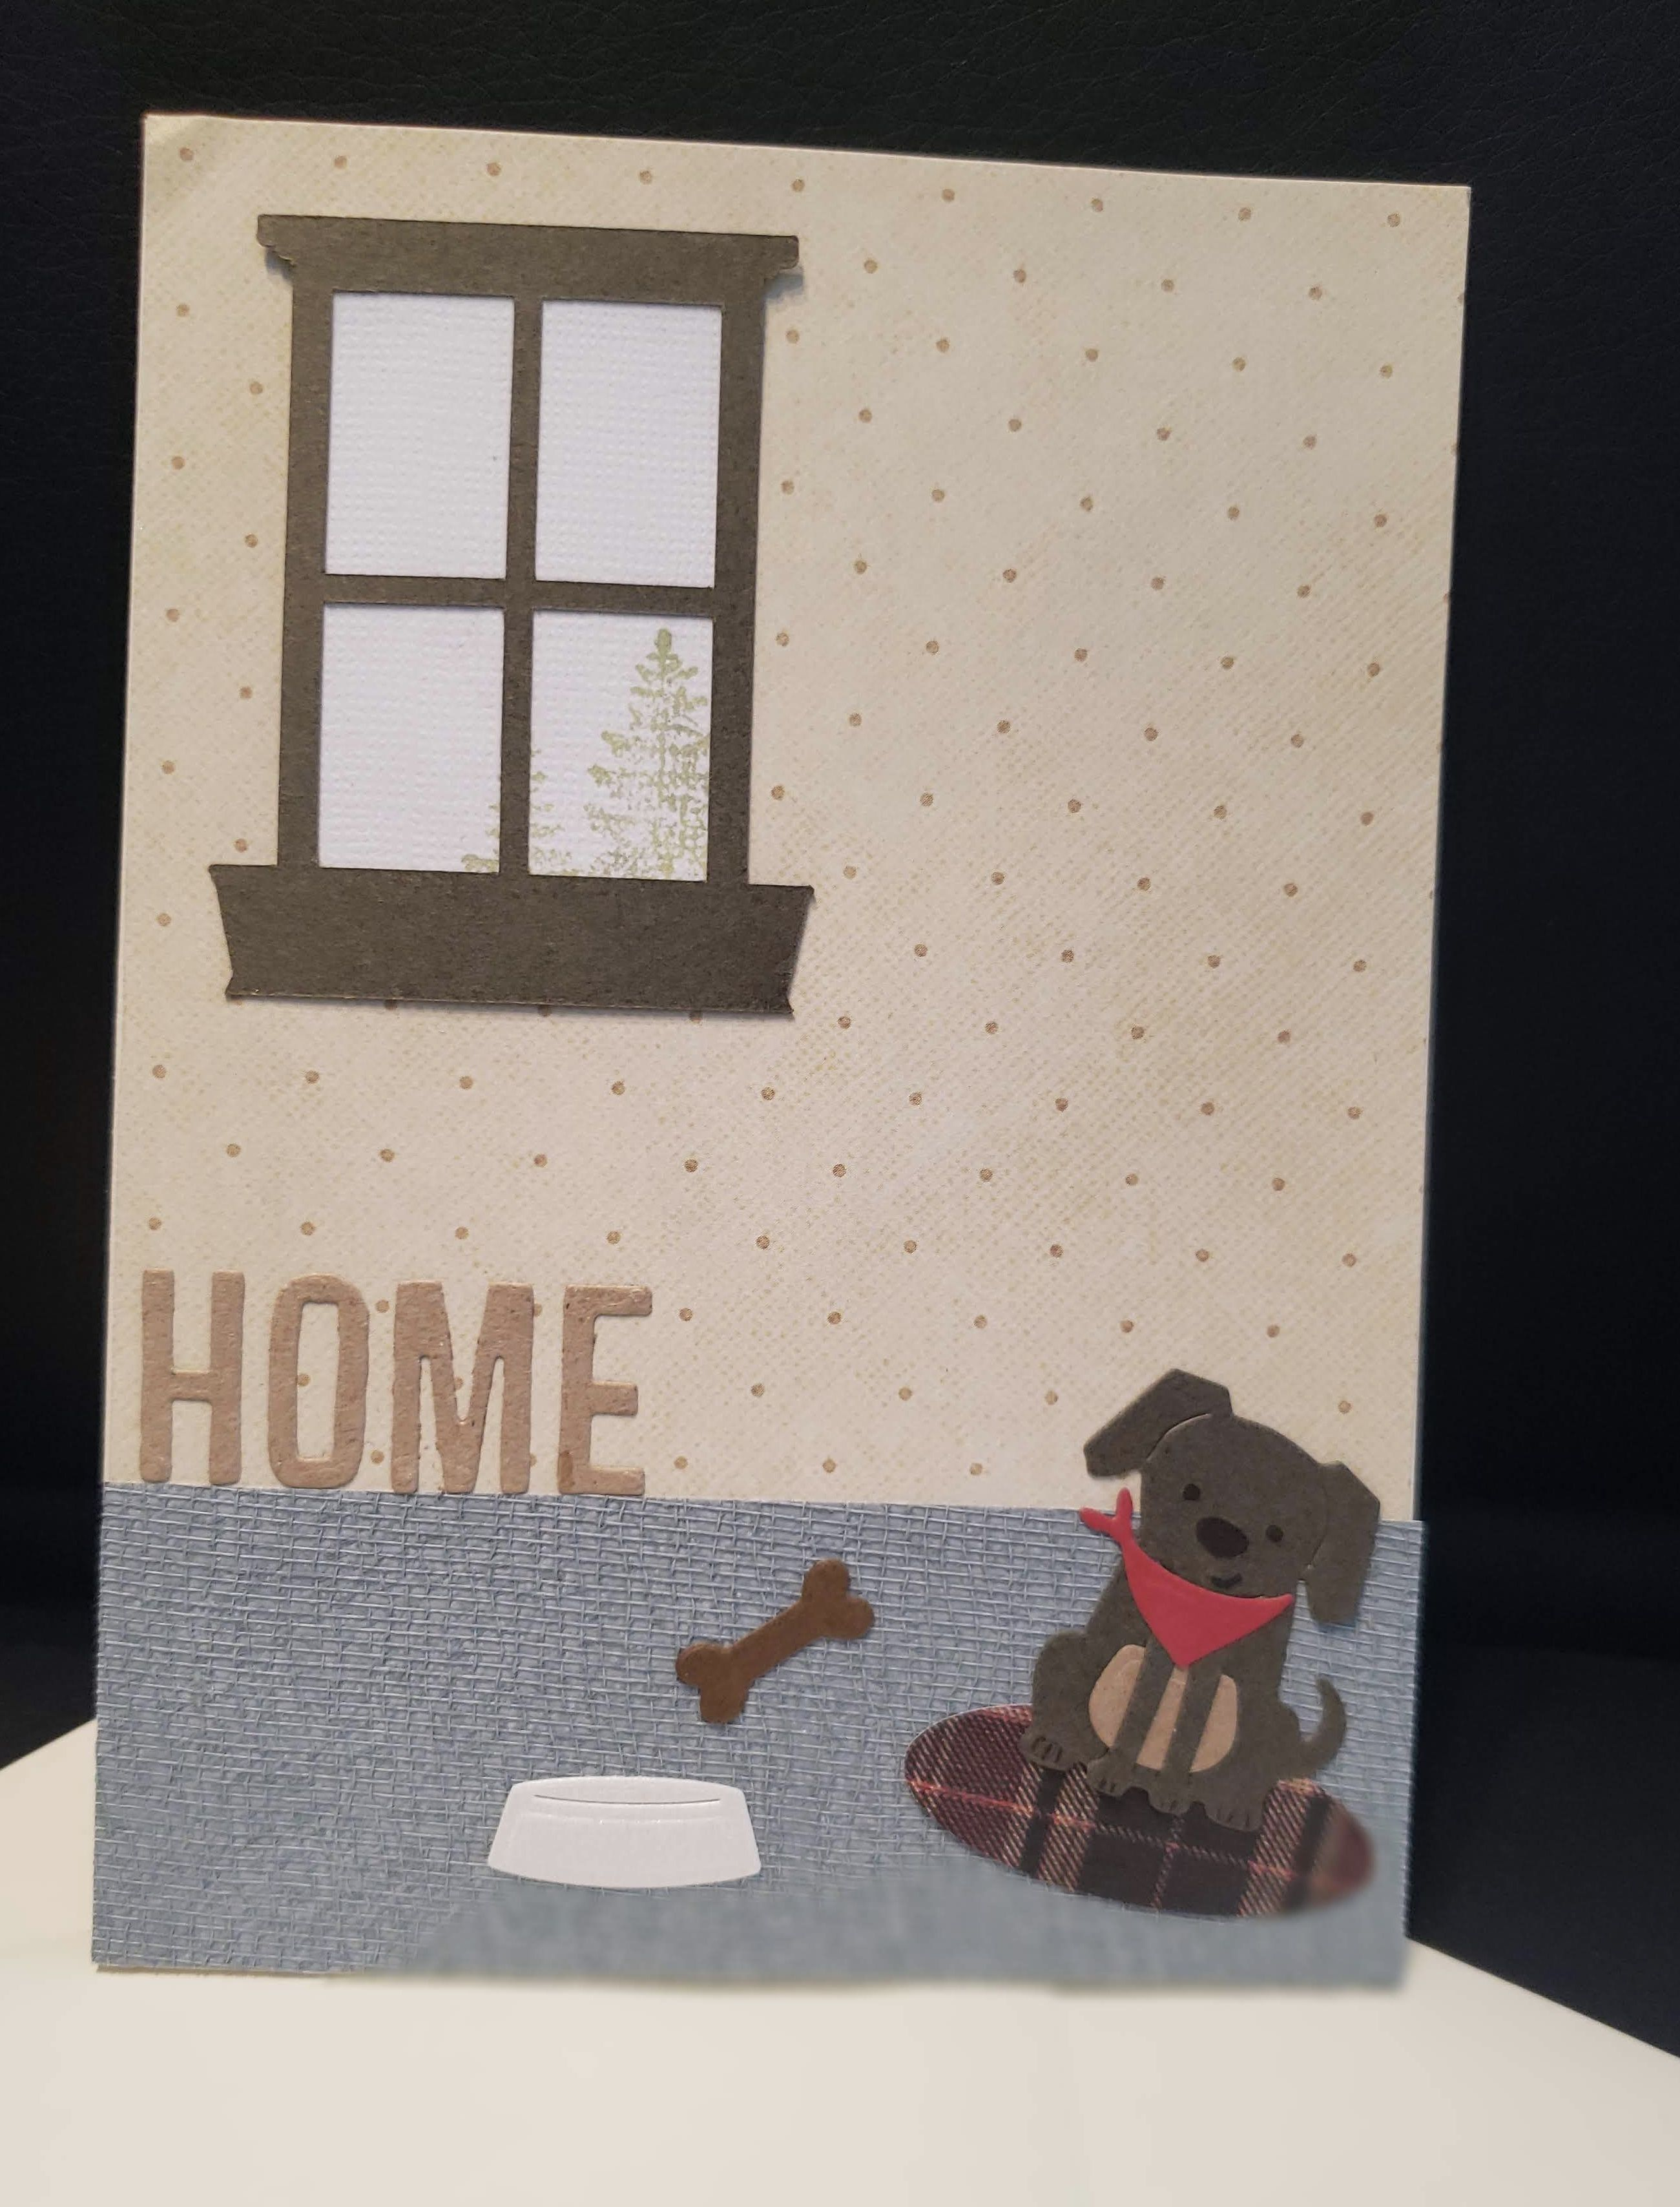 Handmade Home Card With Small Brown Dog With A Red Bandana Handmade Home Brown Dog House Of Cards